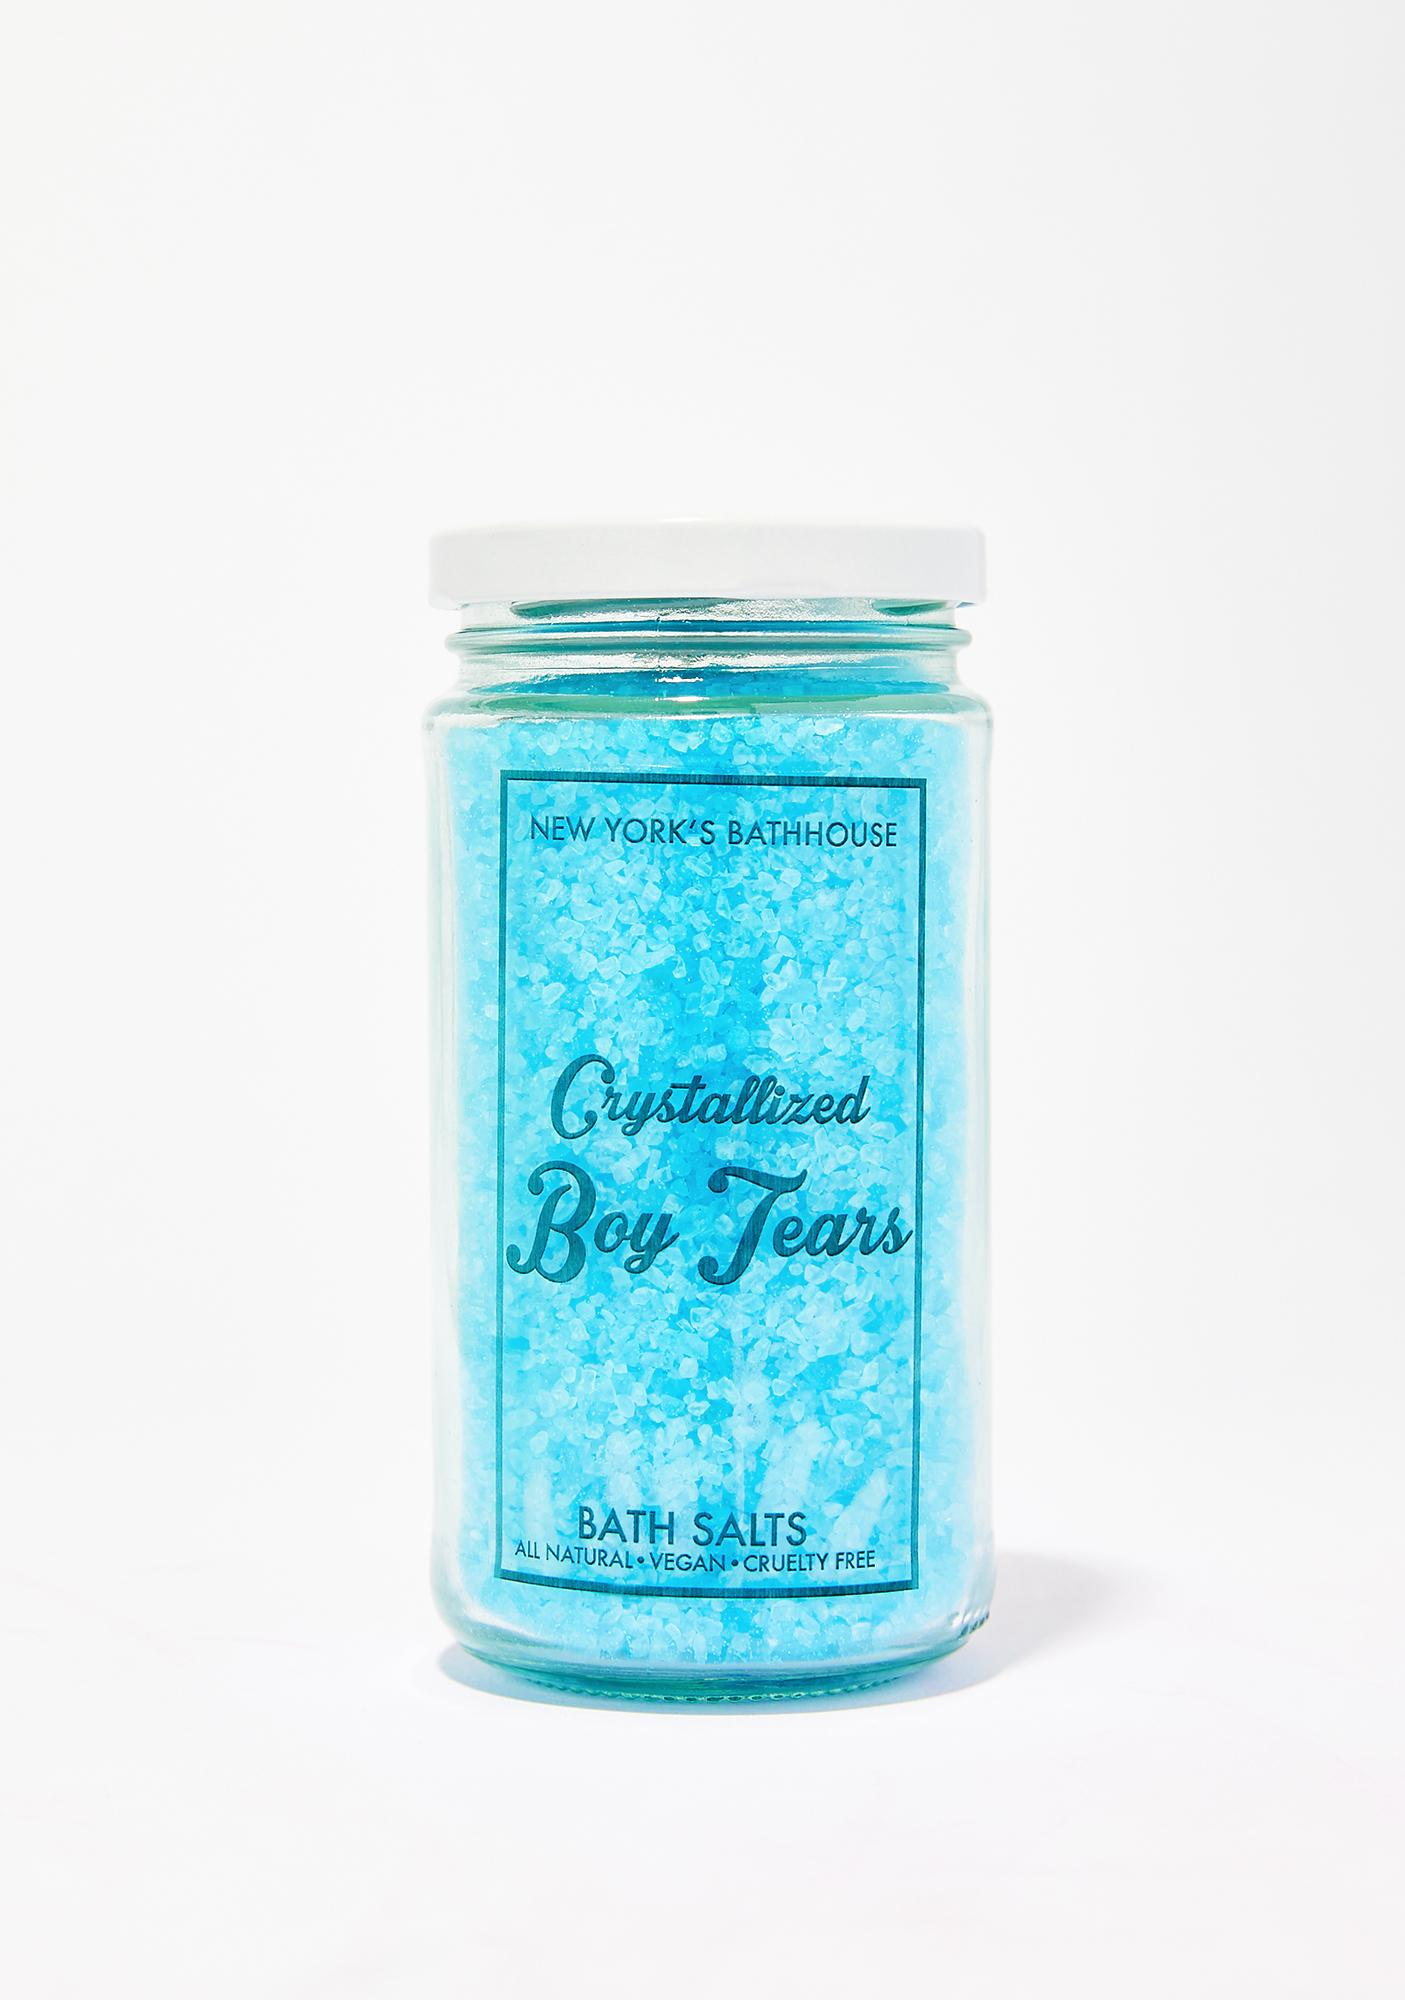 Crystallized Boy Tears Bath Salts by New Yorks Bathhouse